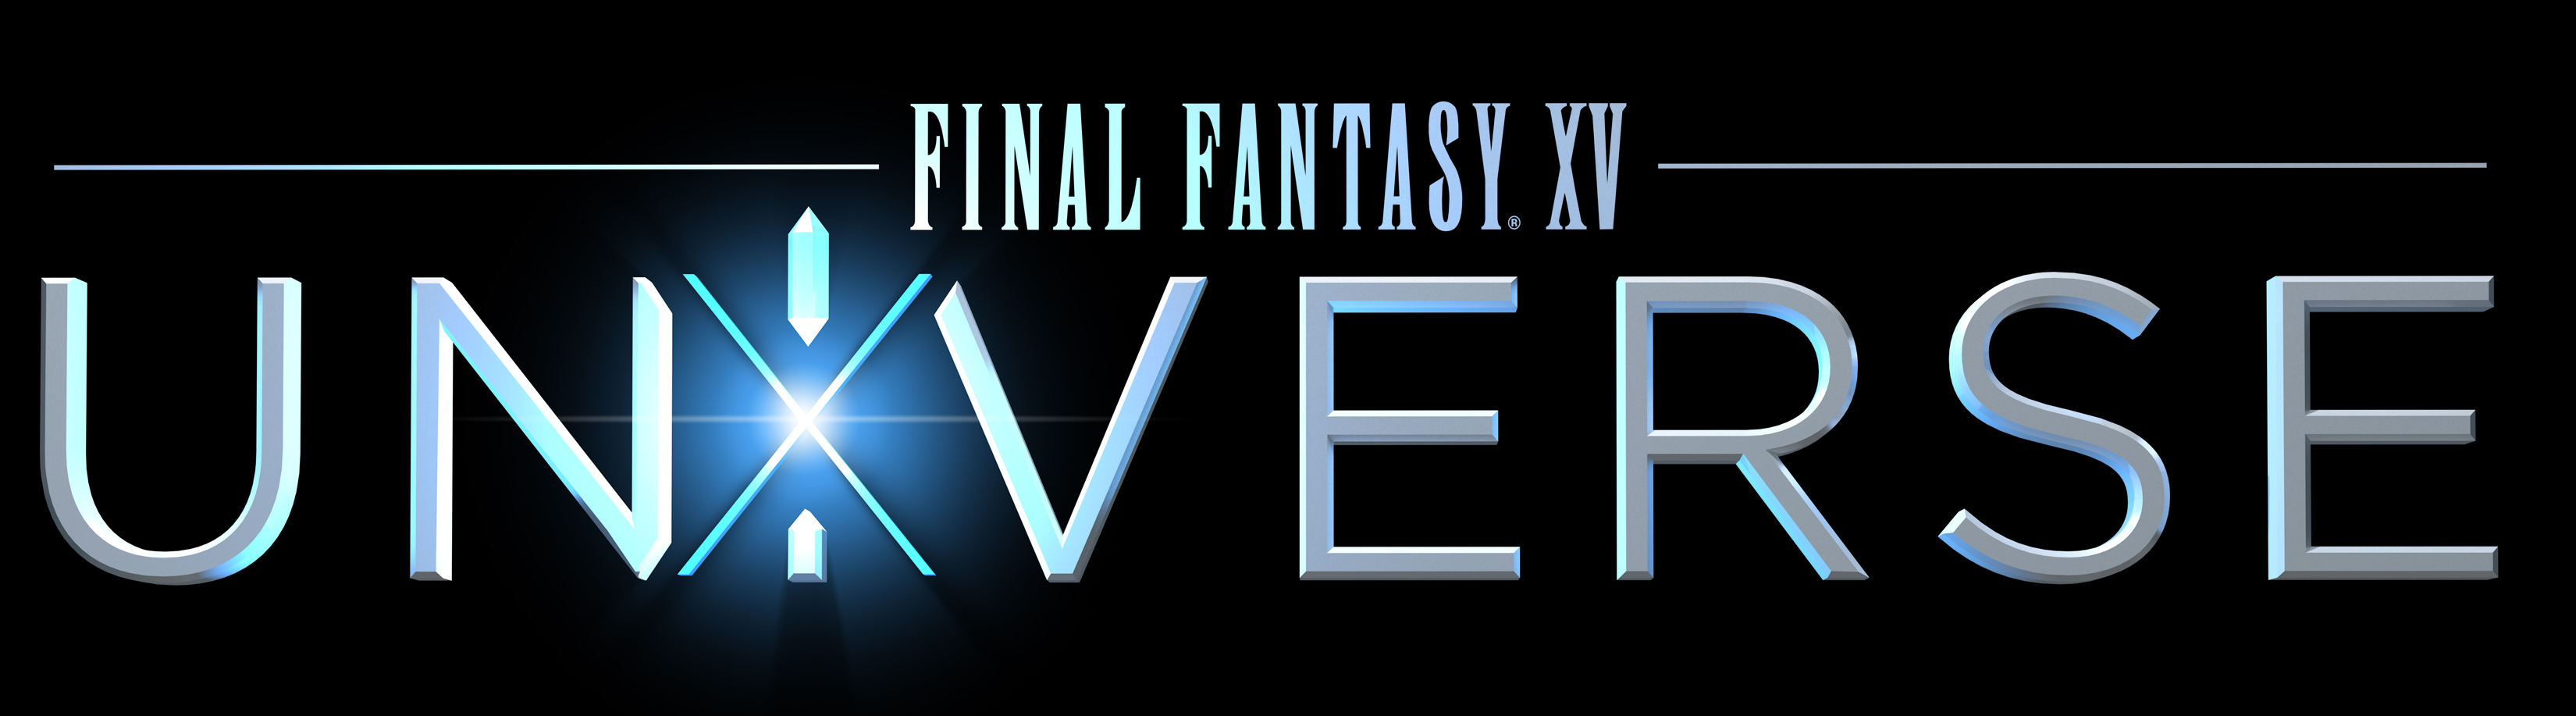 ffxv_final_fantasy_xv_universe_title_treatment